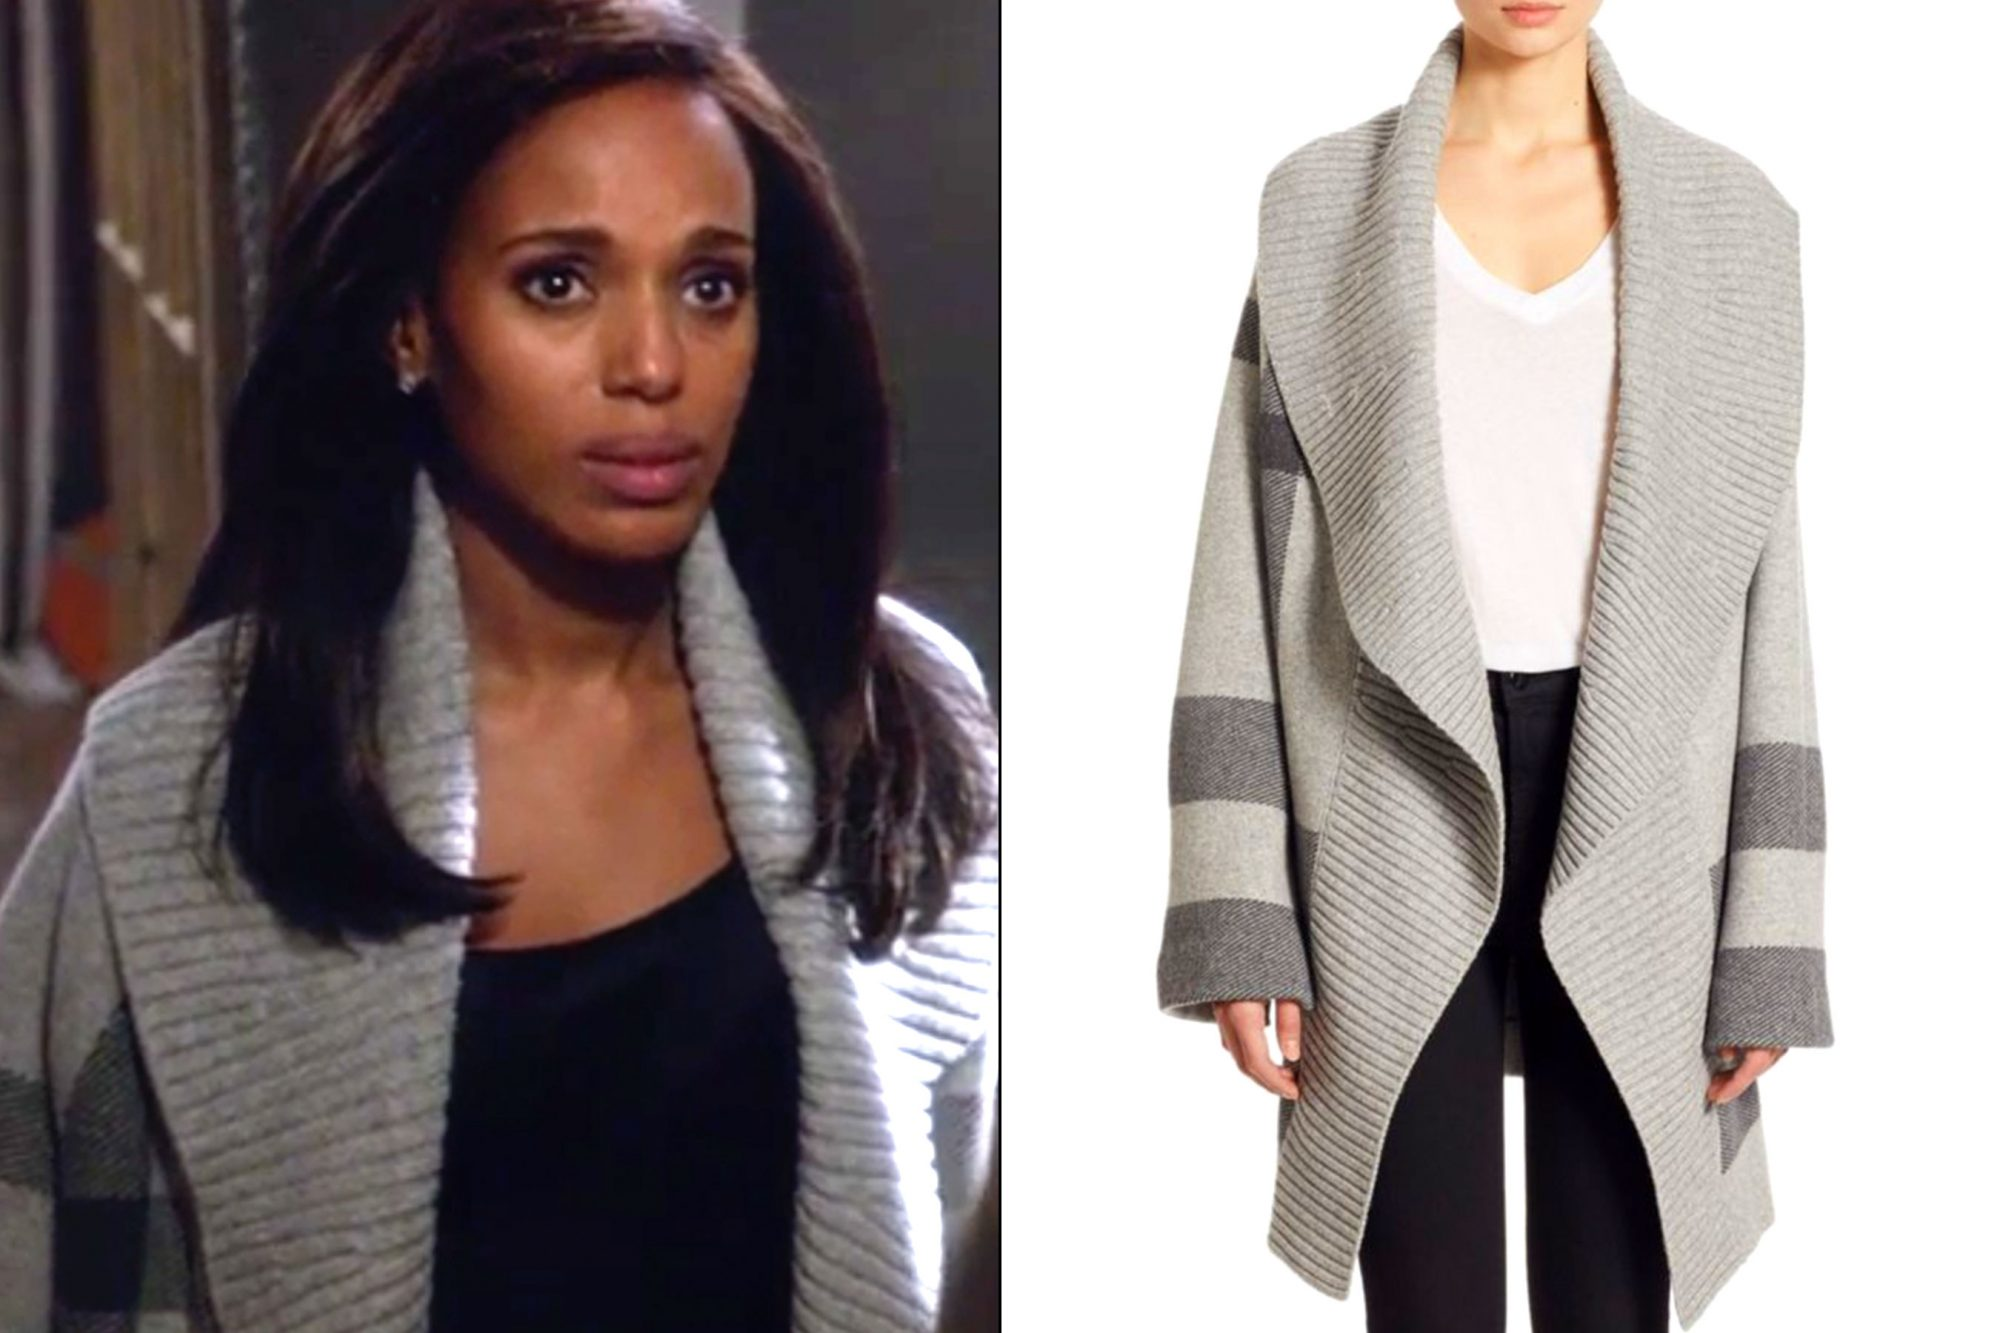 Olivia Pope's (Kerry Washington) open cardigan on Scandal